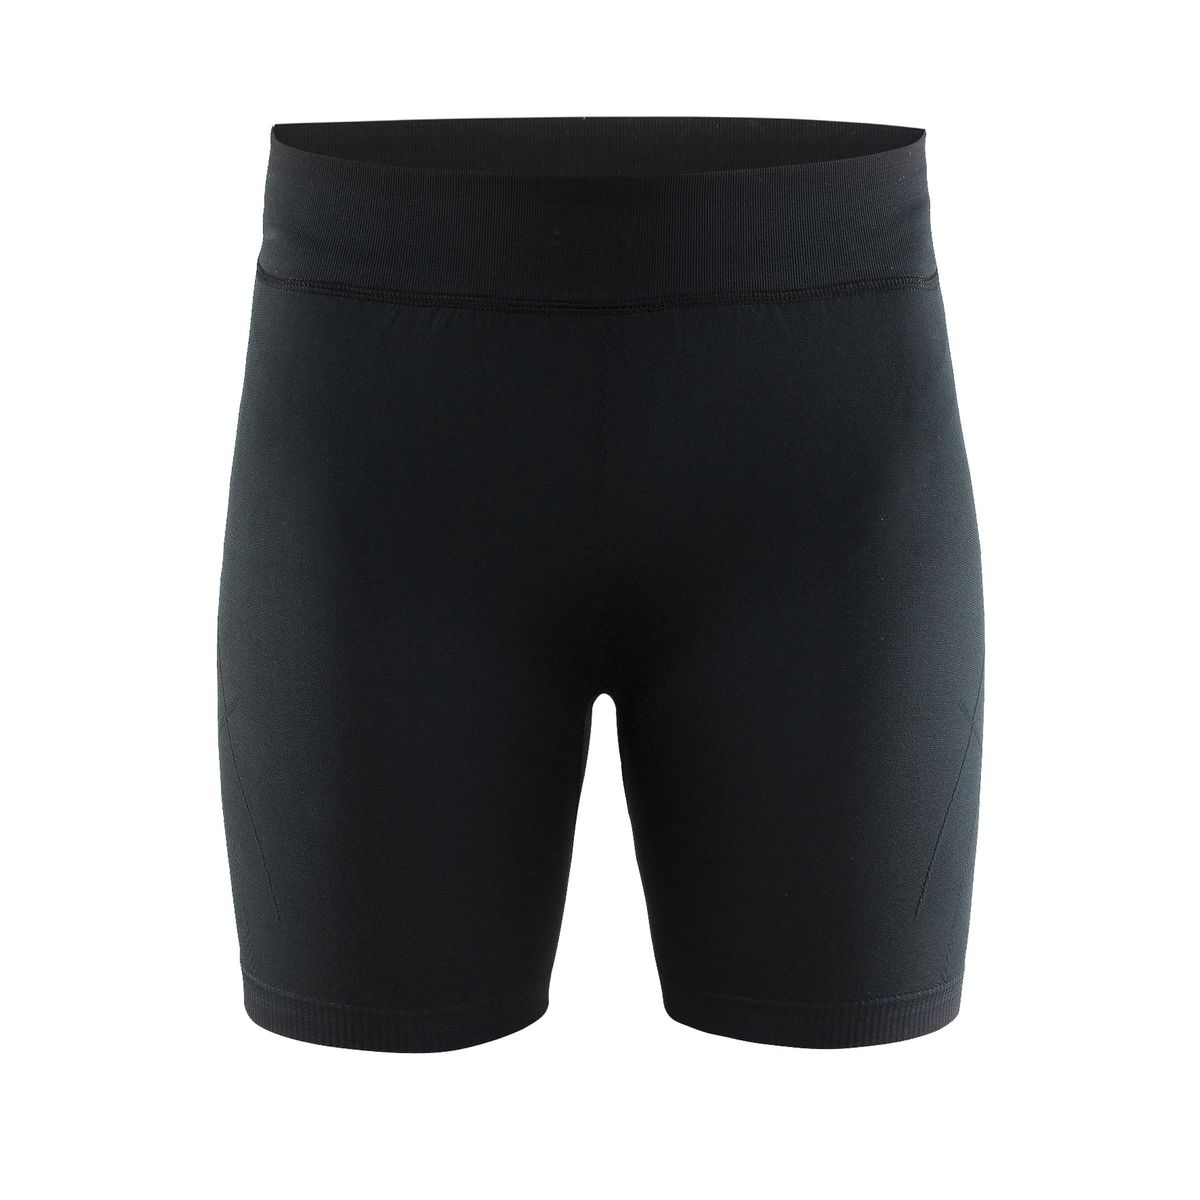 ACTIVE COMFORT women's boxer shorts